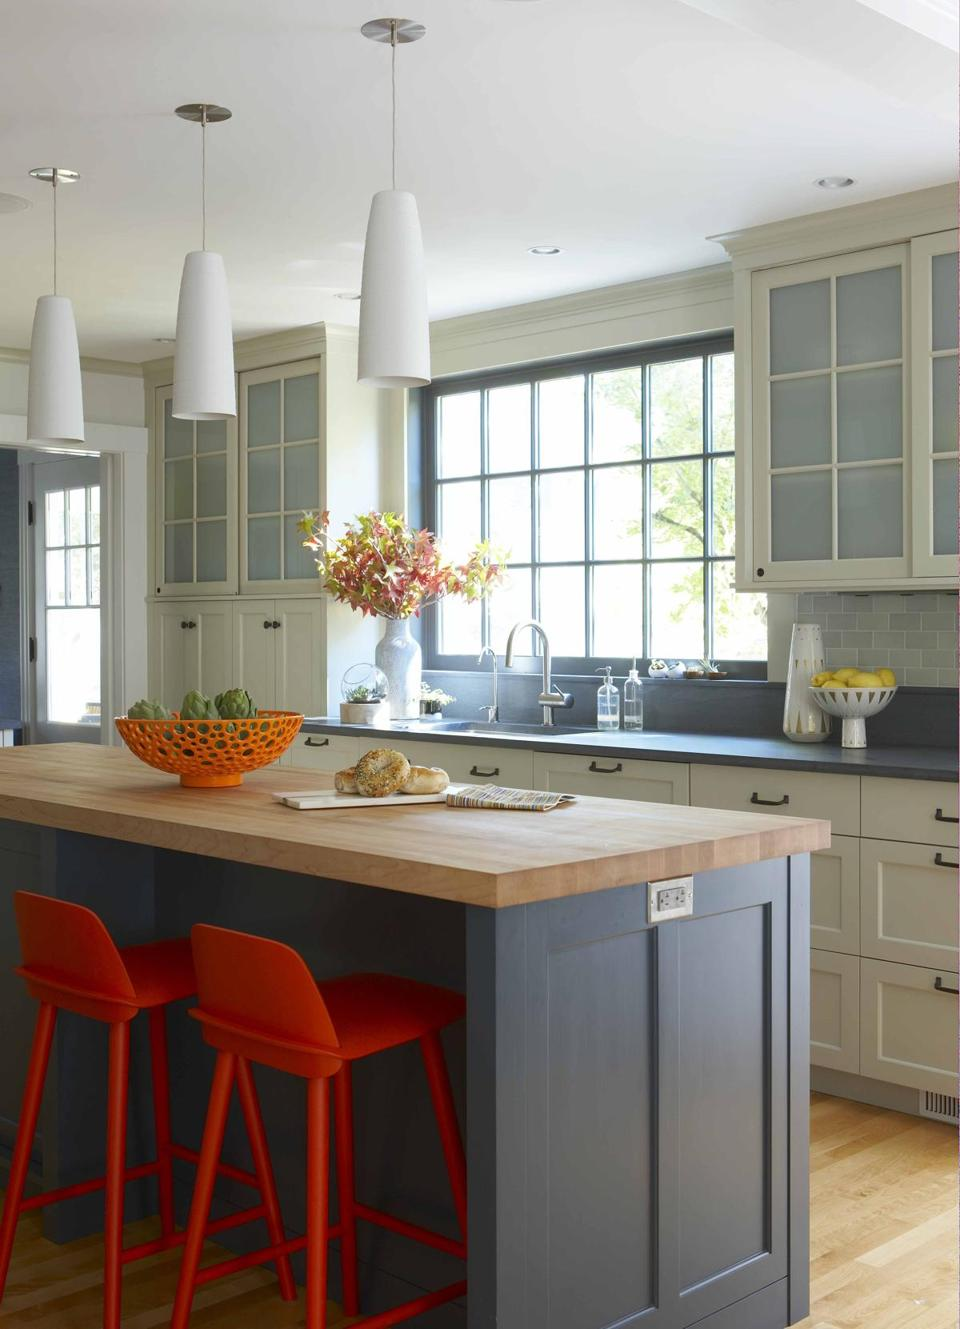 A 400-square-foot addition allowed for an expanded kitchen area, made cheery with accents of vibrant orange paired with dark blue.